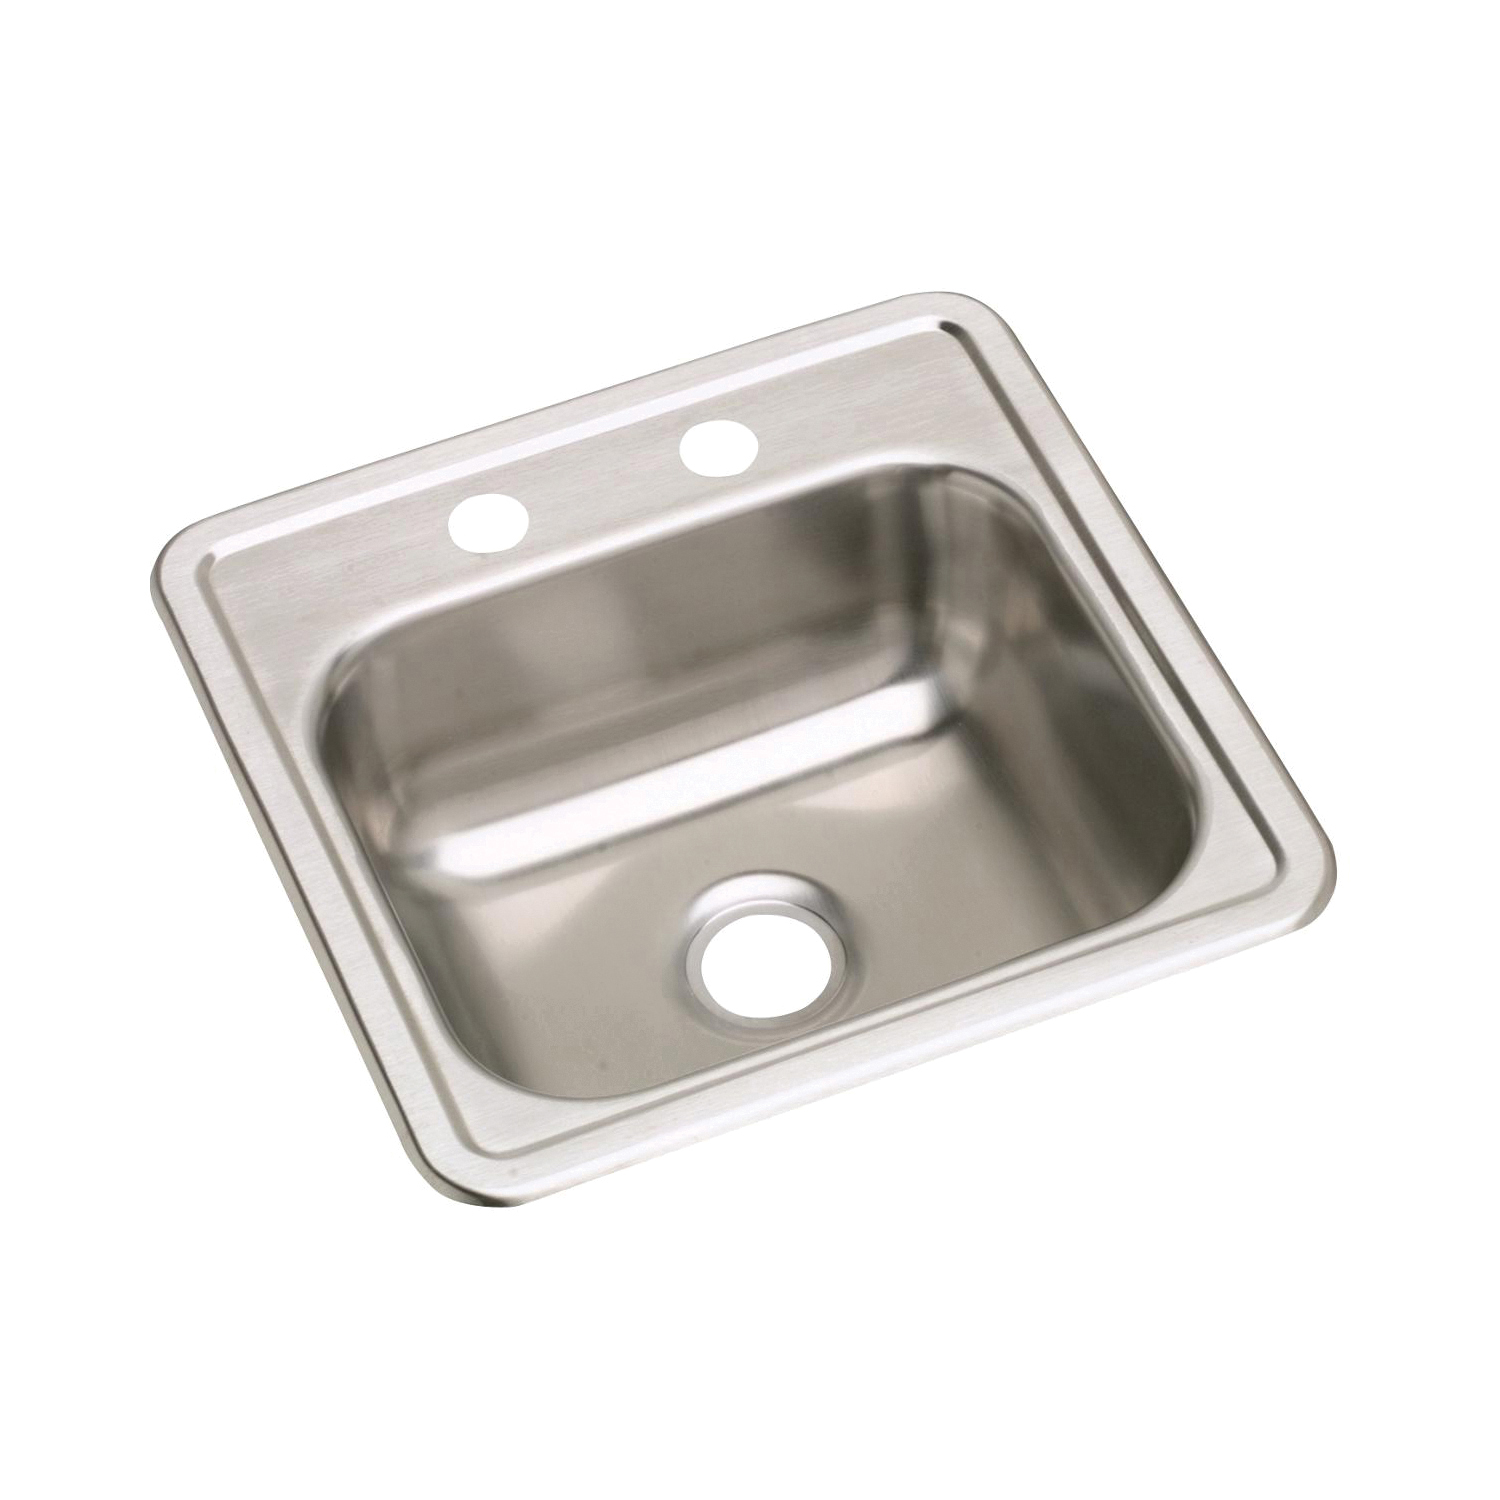 Elkay D115162 Dayton Bar Sink, Square, 2 Faucet Holes, 15 in W x 15 in D x 5-3/16 in H, Top Mount, Stainless Steel, Satin